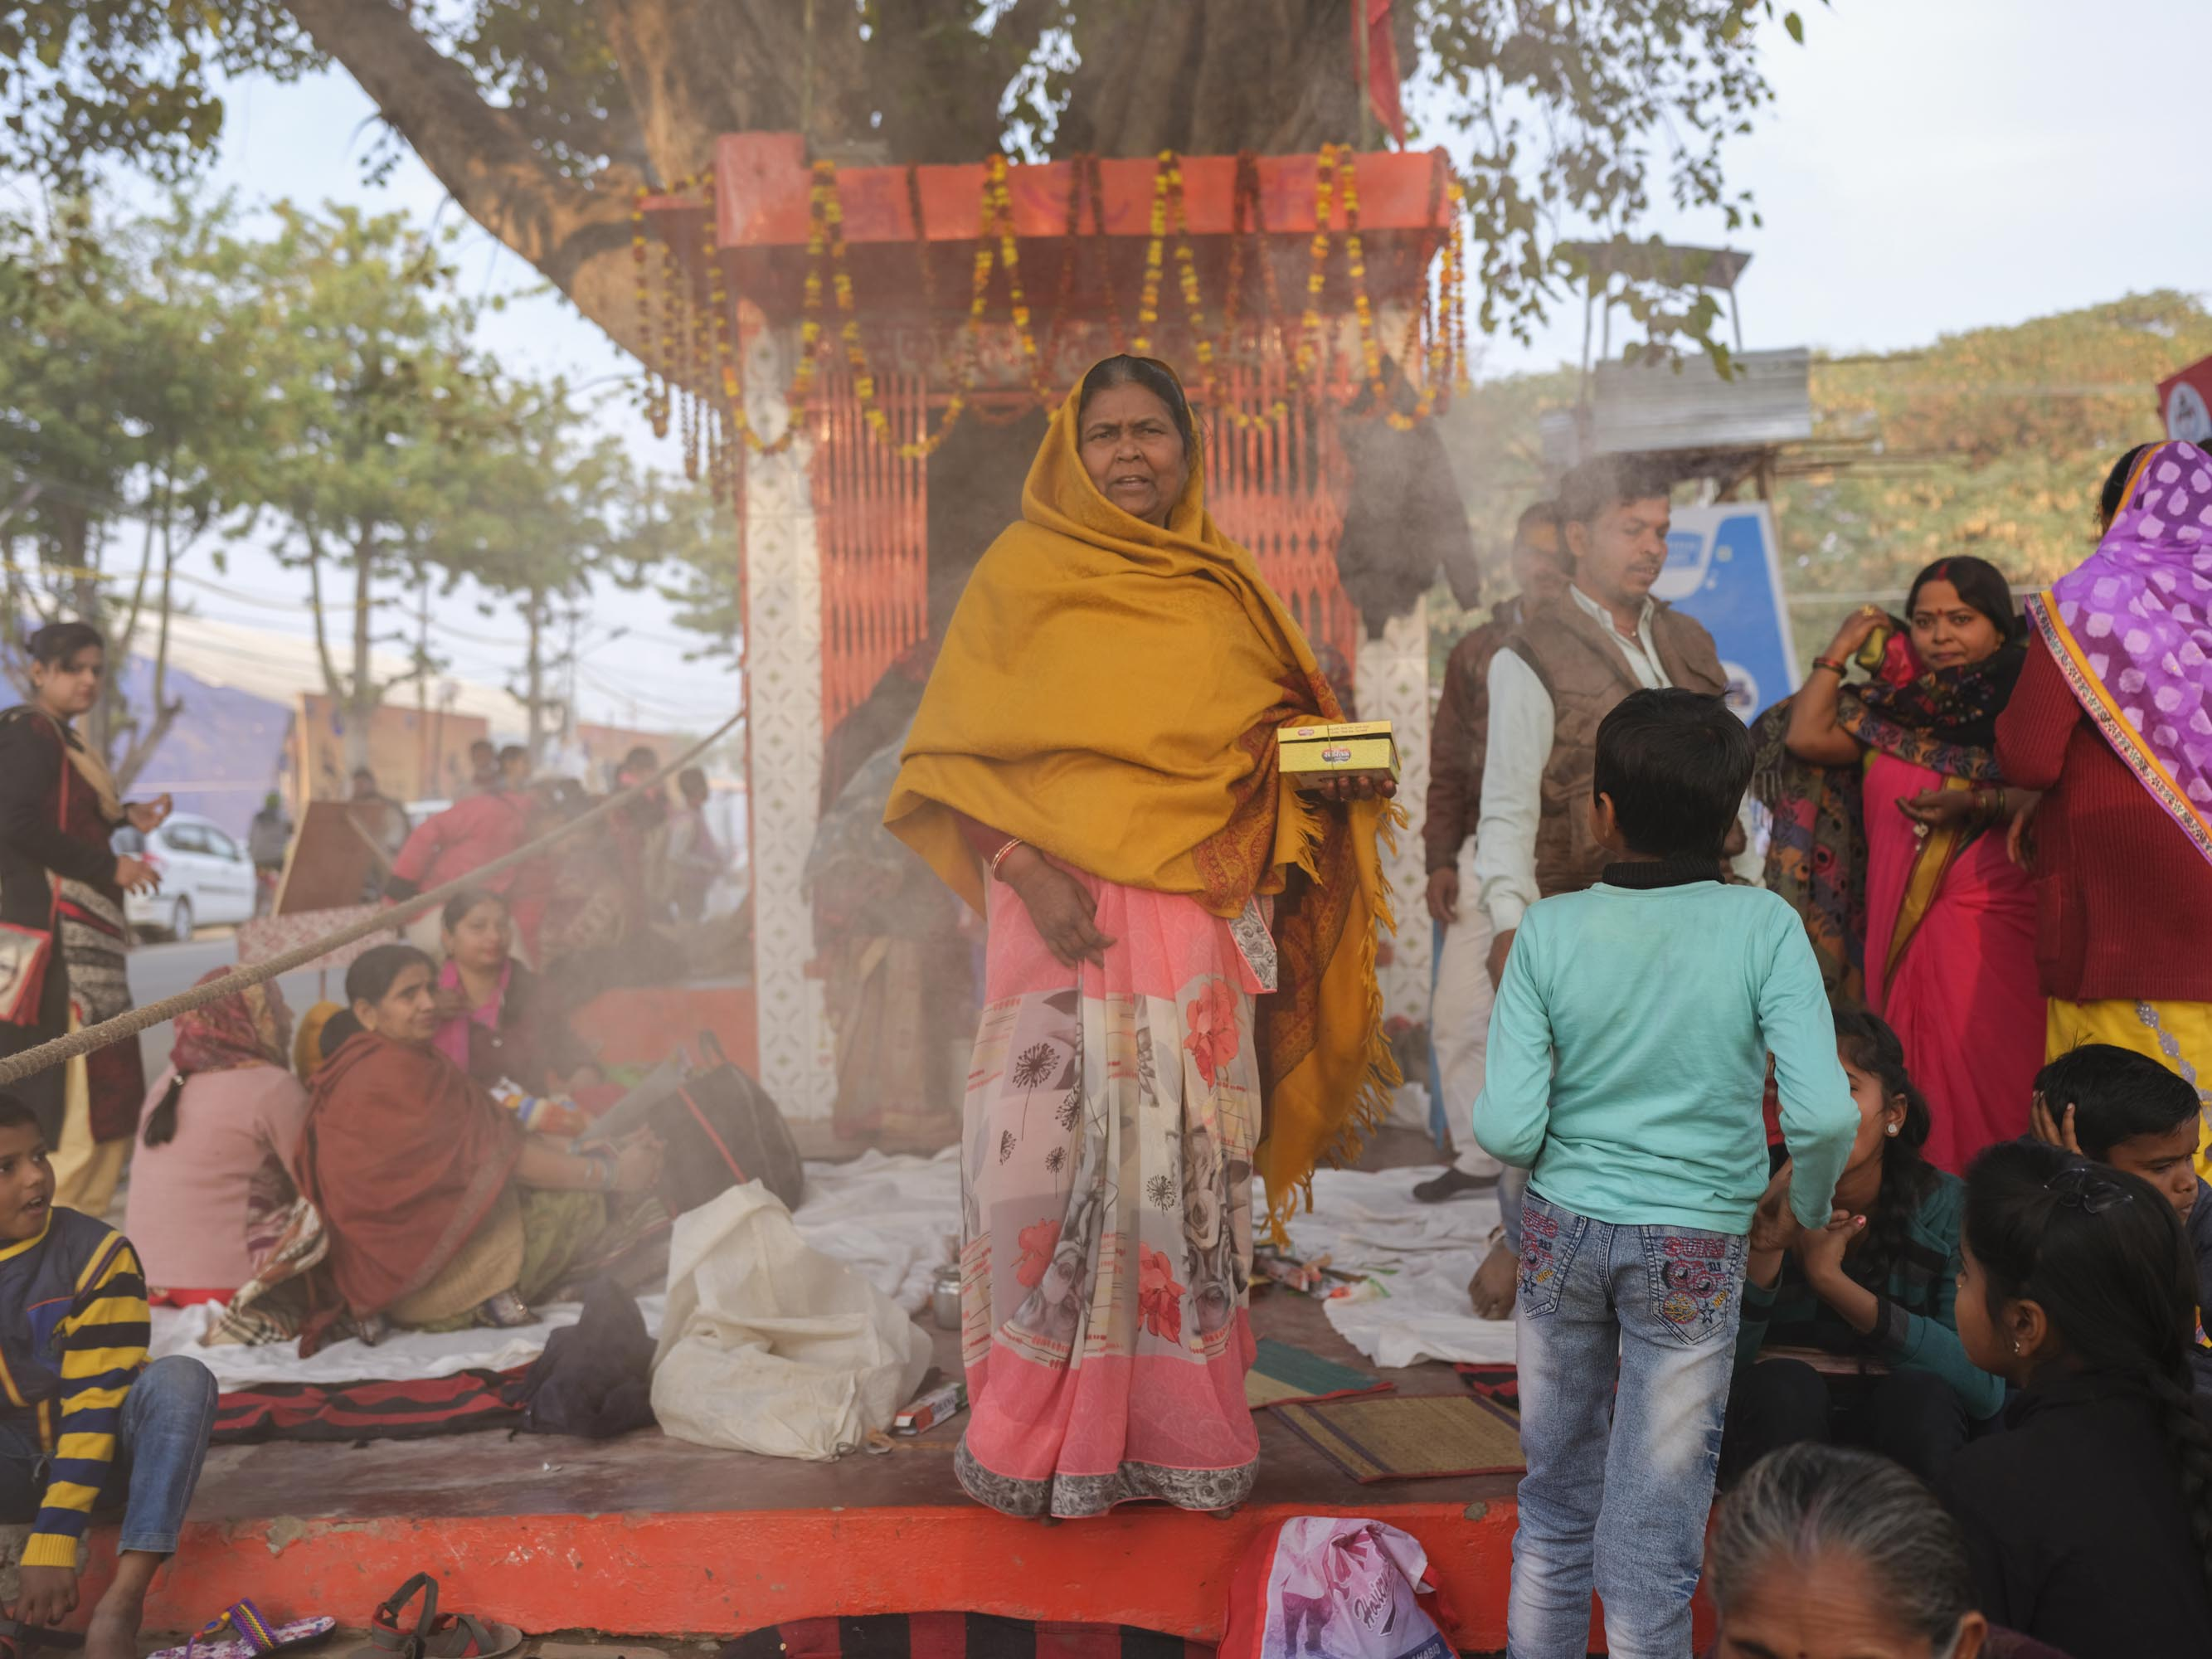 small temple celebration women kids pilgrims Kumbh mela 2019 India Allahabad Prayagraj Ardh hindu religious Festival event rivers photographer jose jeuland photography